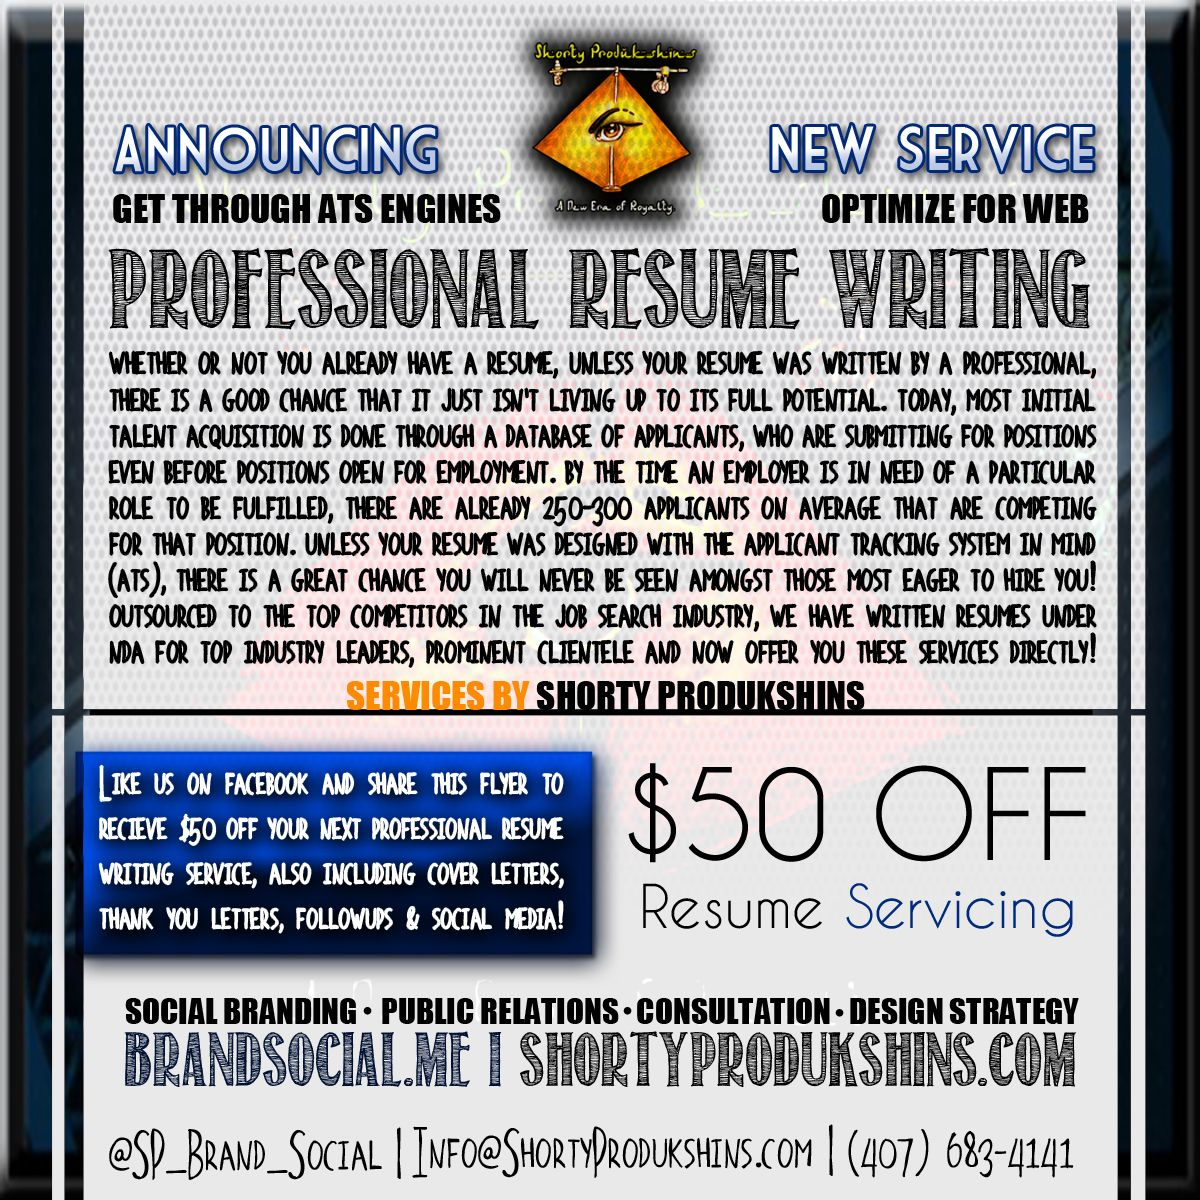 Best Resume Writing Service Entrancing Professional #resumewriting #resume #coupon #business #career #work